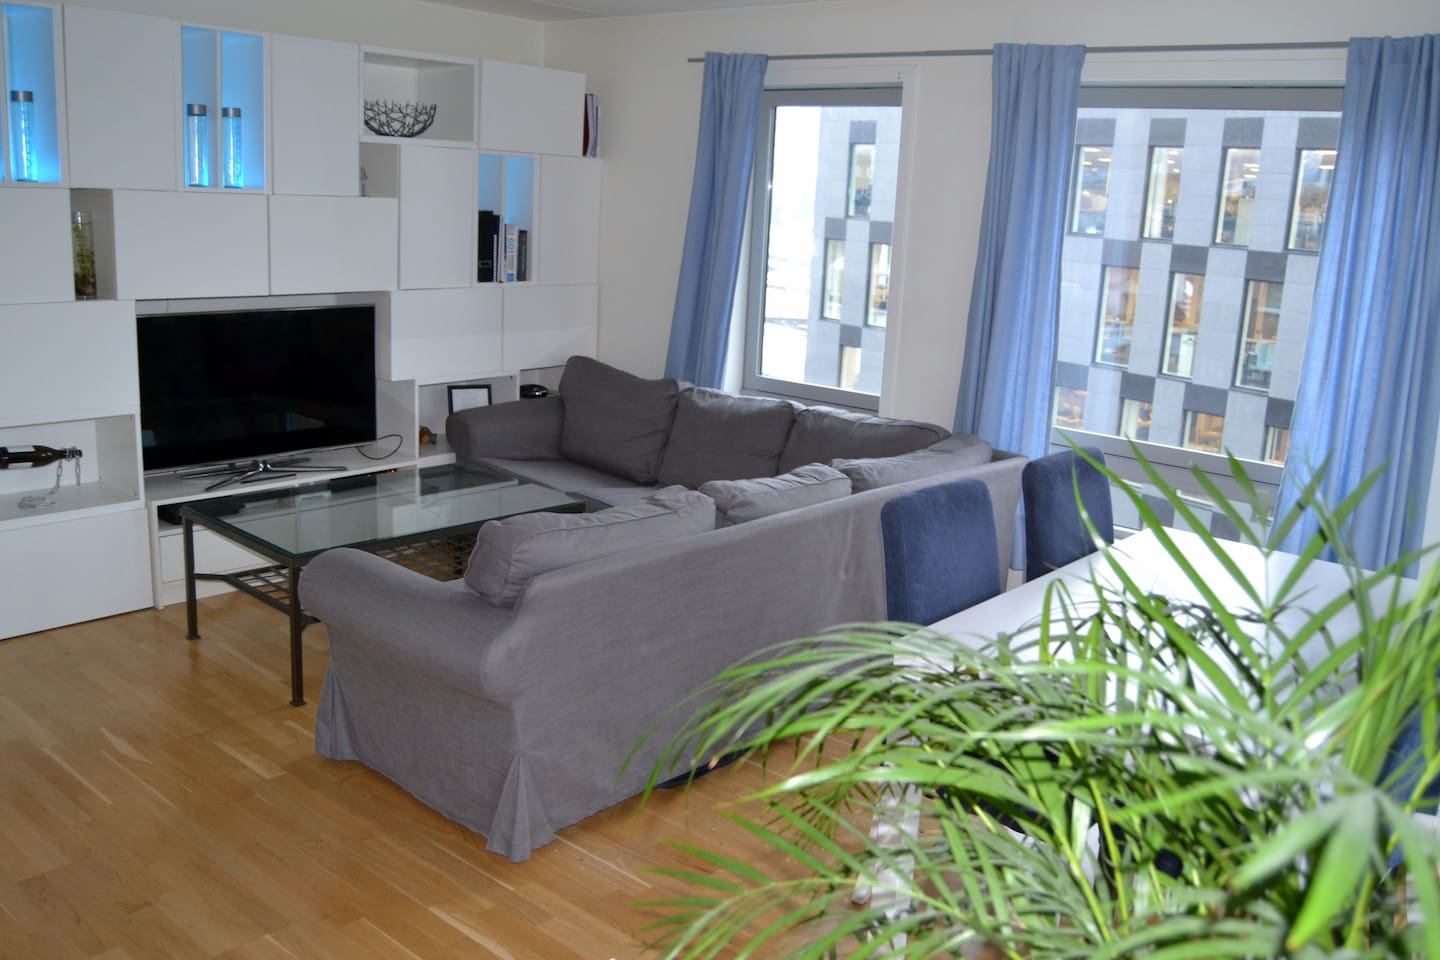 Apartment 1, large sofa and flatscreen TV